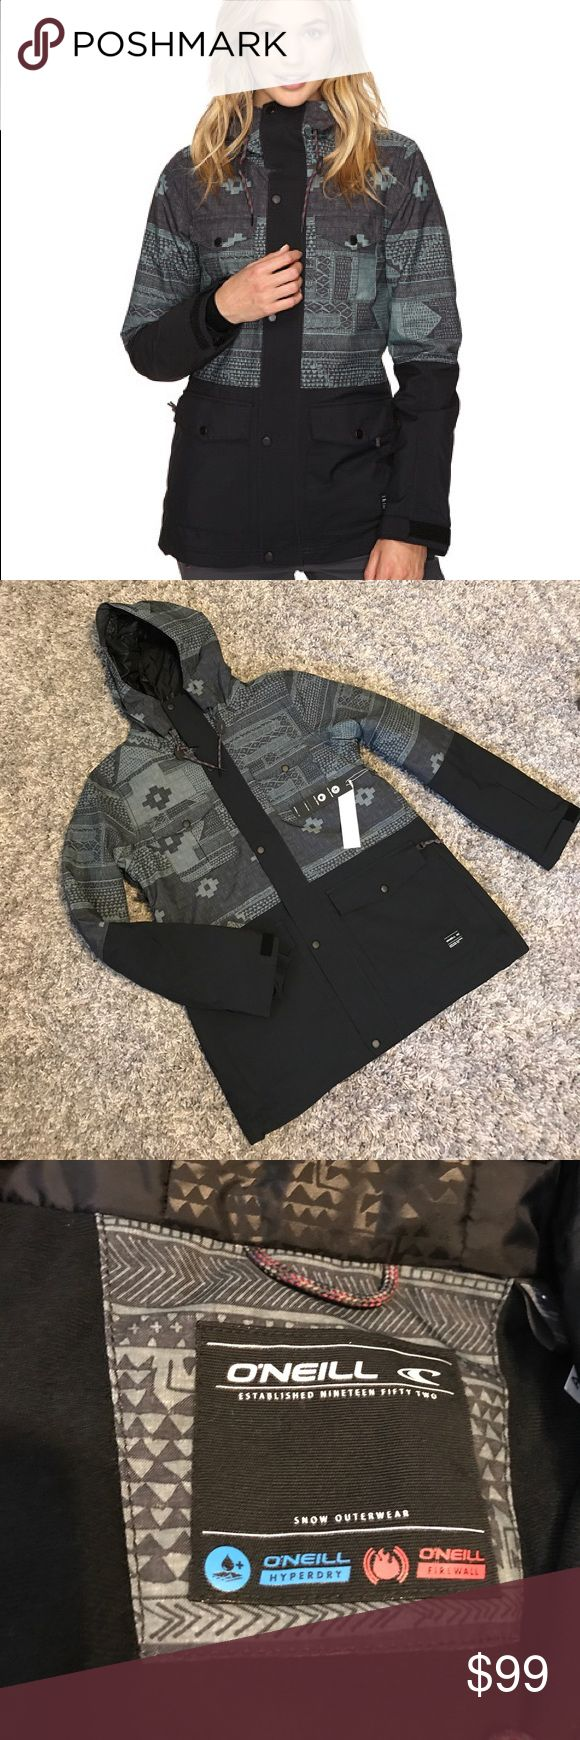 O'Neill NWT Women's Winter Ski Snowboard Jacket New with Tags! Perfect for skiing and snowboarding! Also awesome for everyday wear! Reasonable offers accepted! Bundle for a private discount! o'neill Jackets & Coats